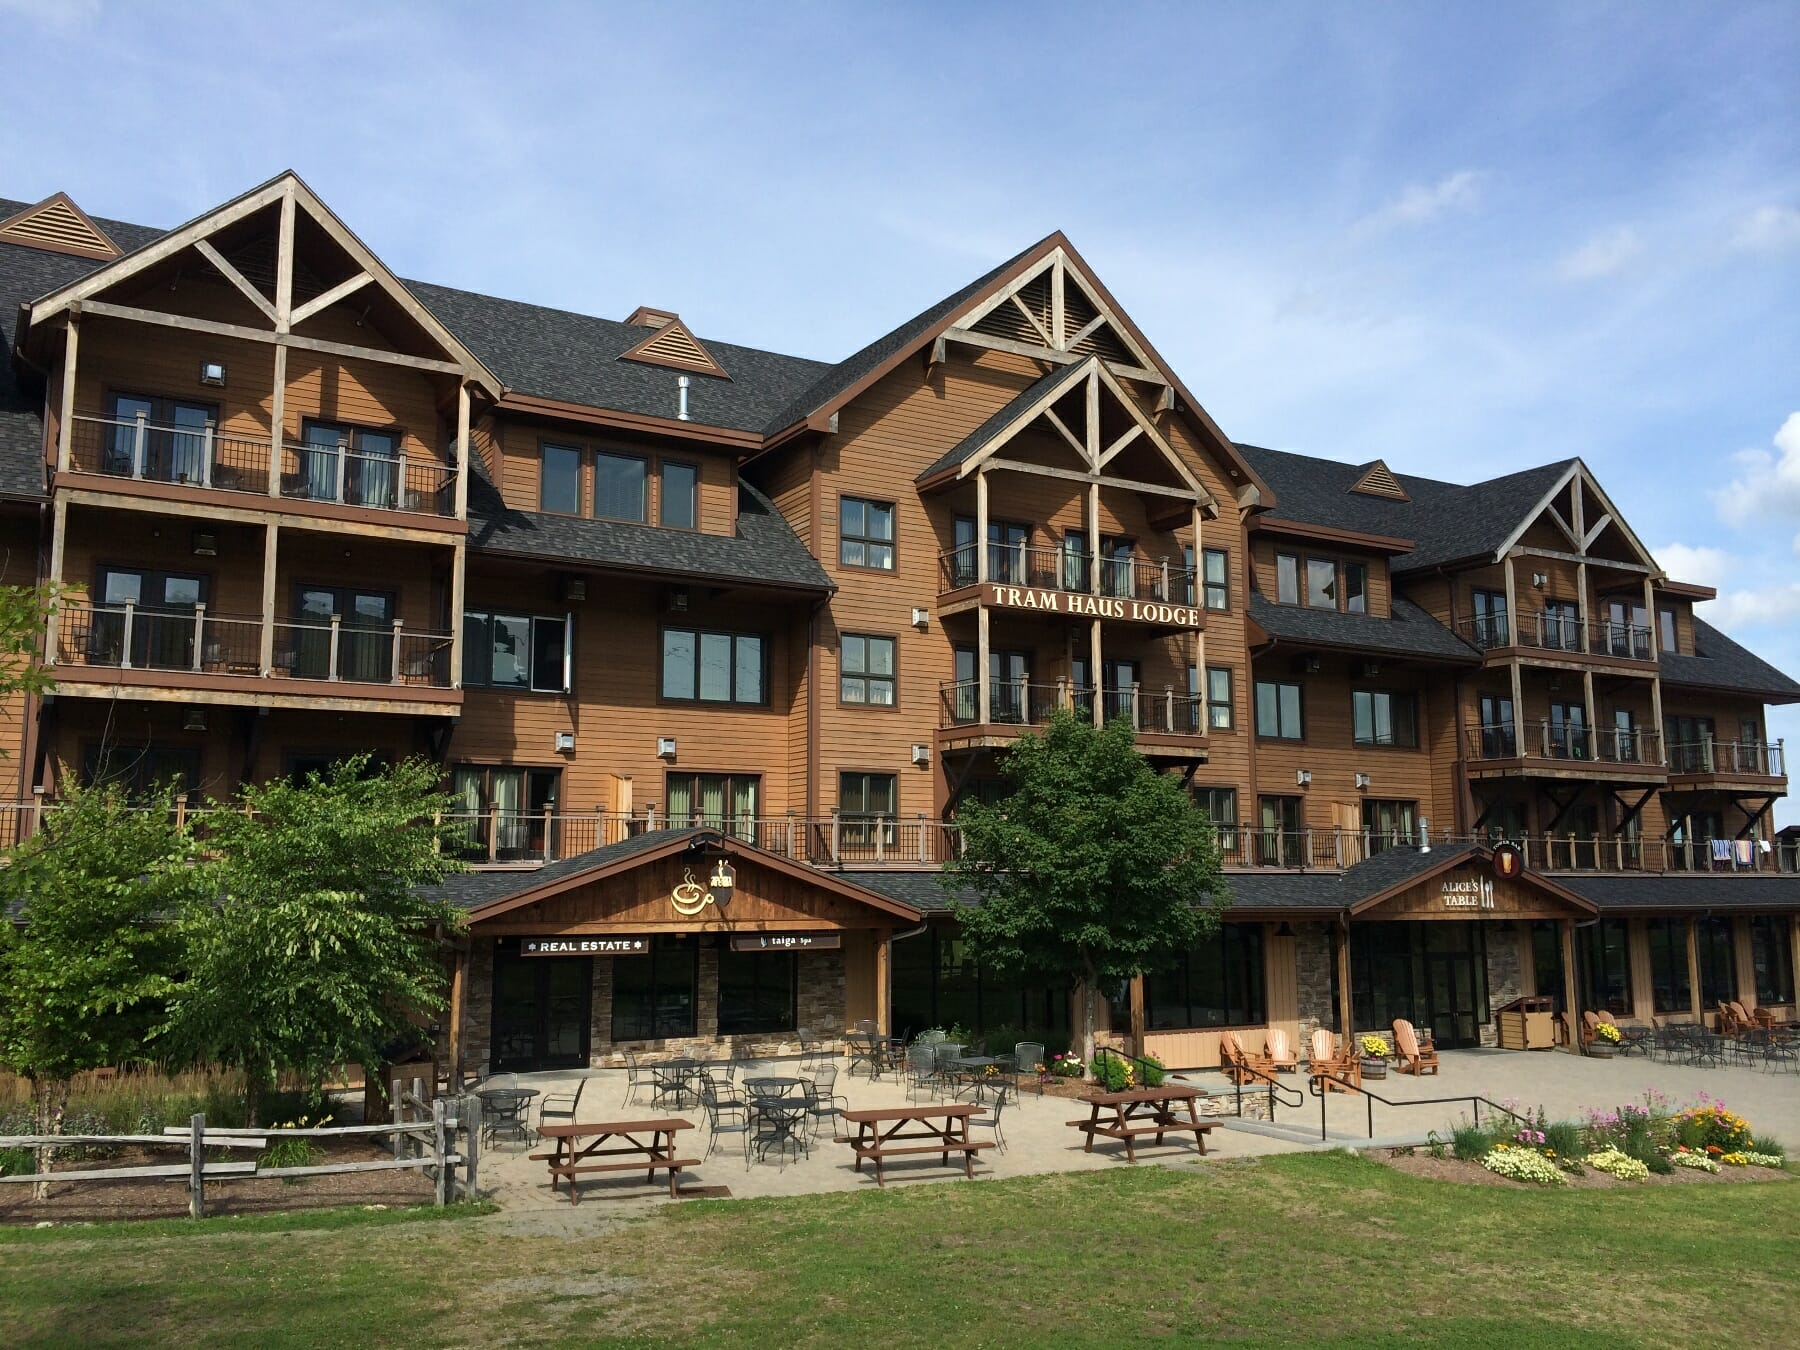 public timber frames to visit jay peak resort